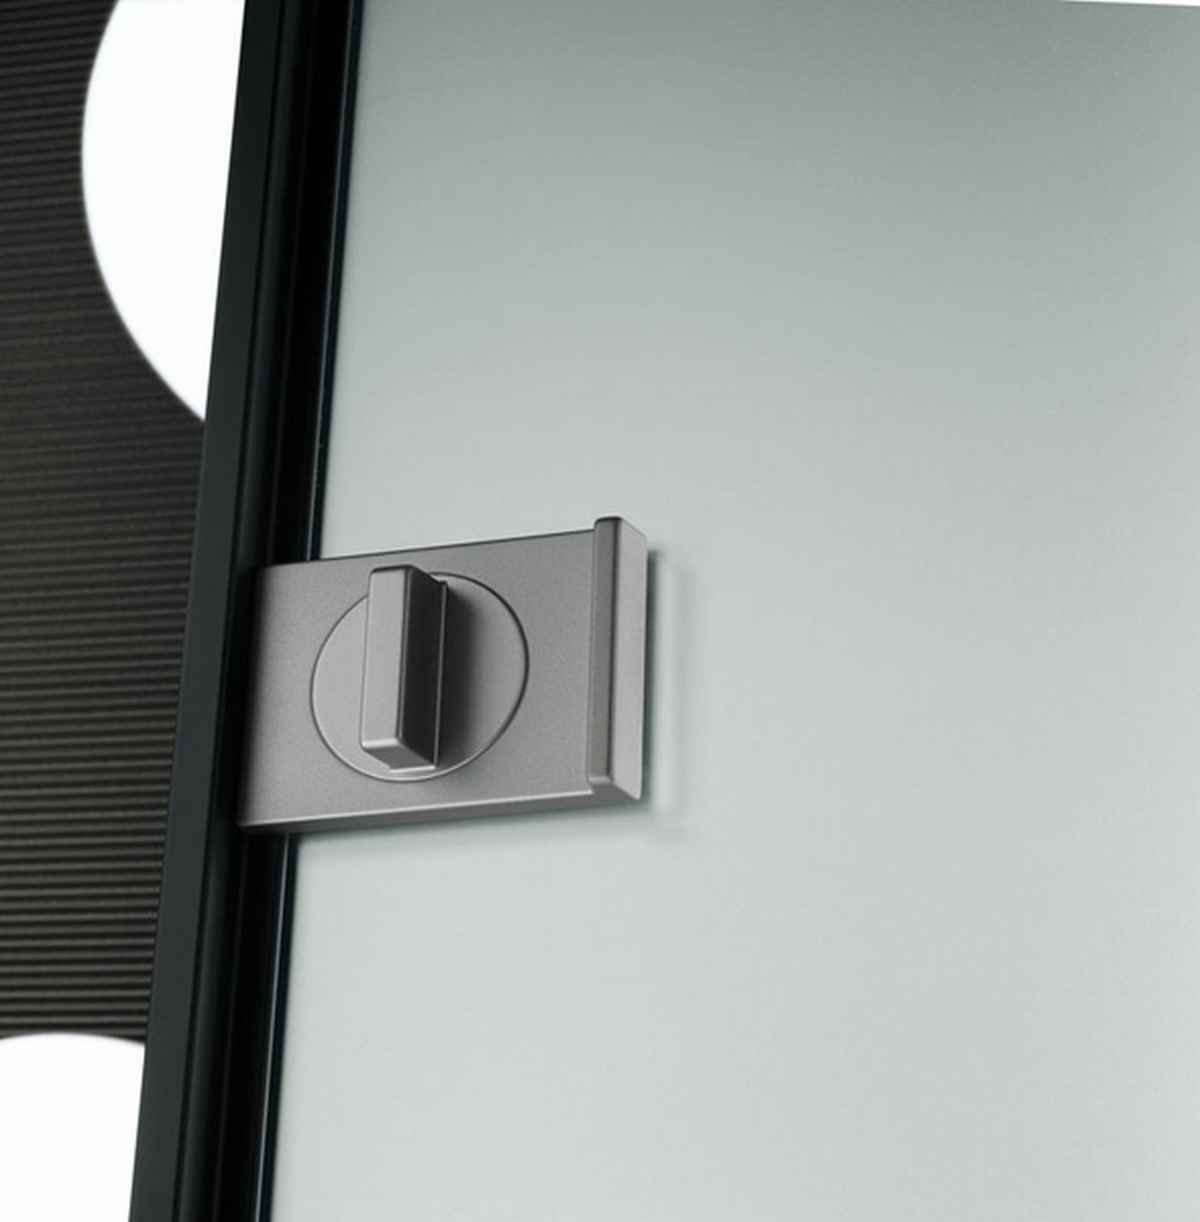 Frameless Glass Sliding Door Locks